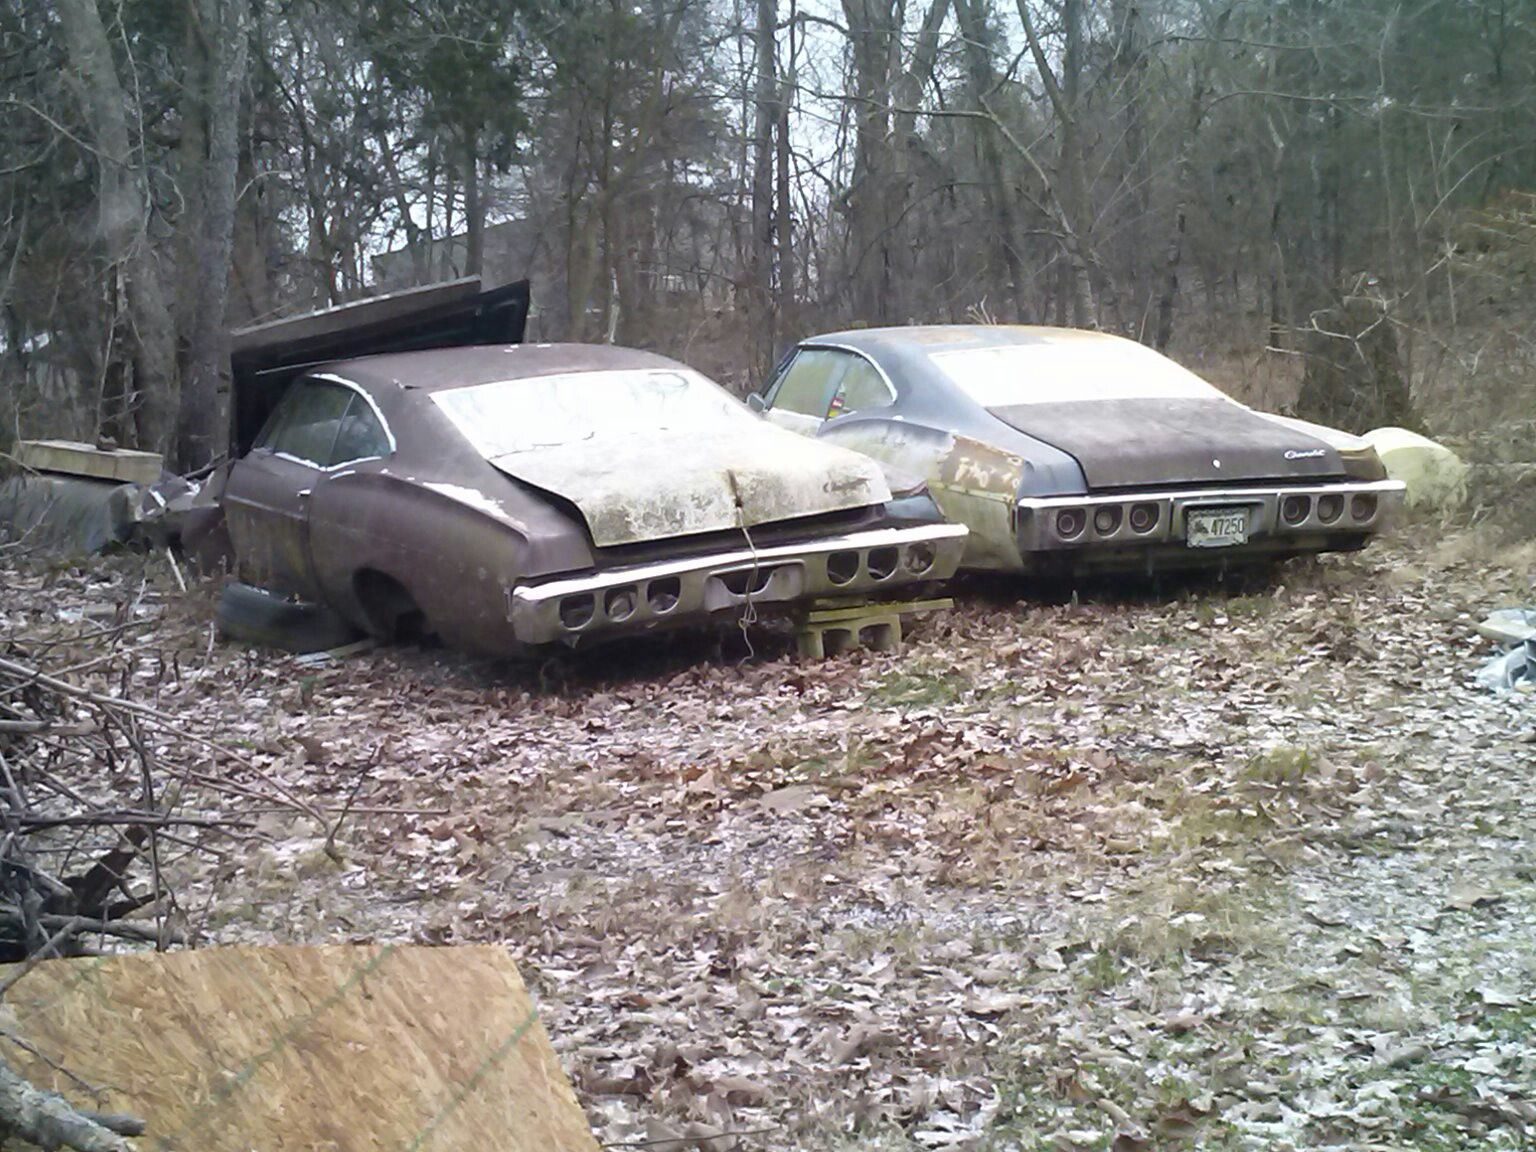 Two 67 chevy impalas found somewhere in arkansas tripper s travels http